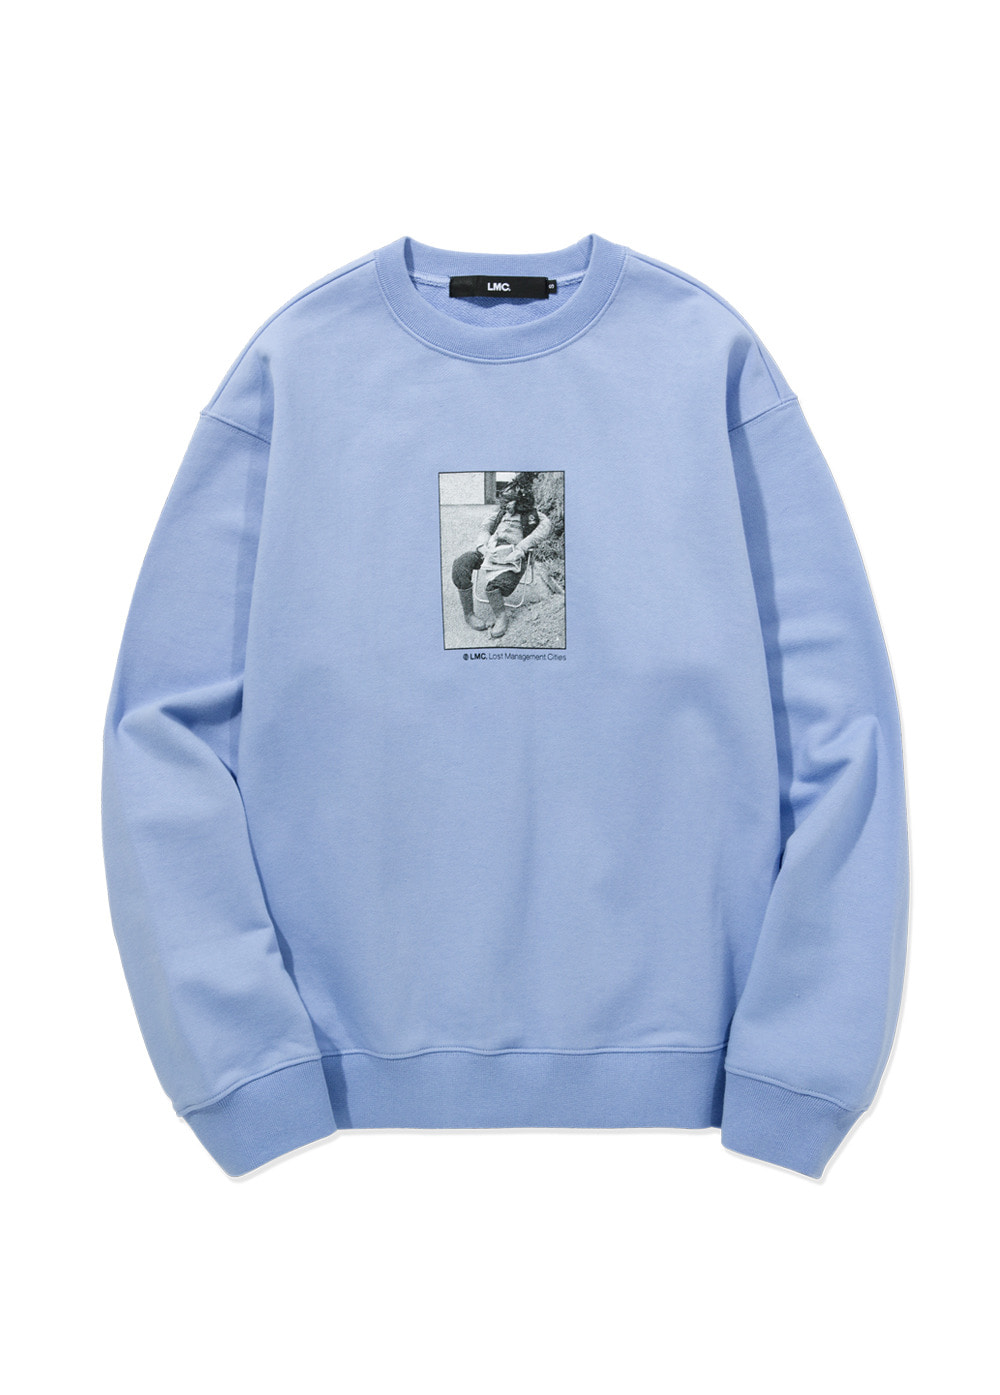 LMC SCARECROW SWEATSHIRT powder blue